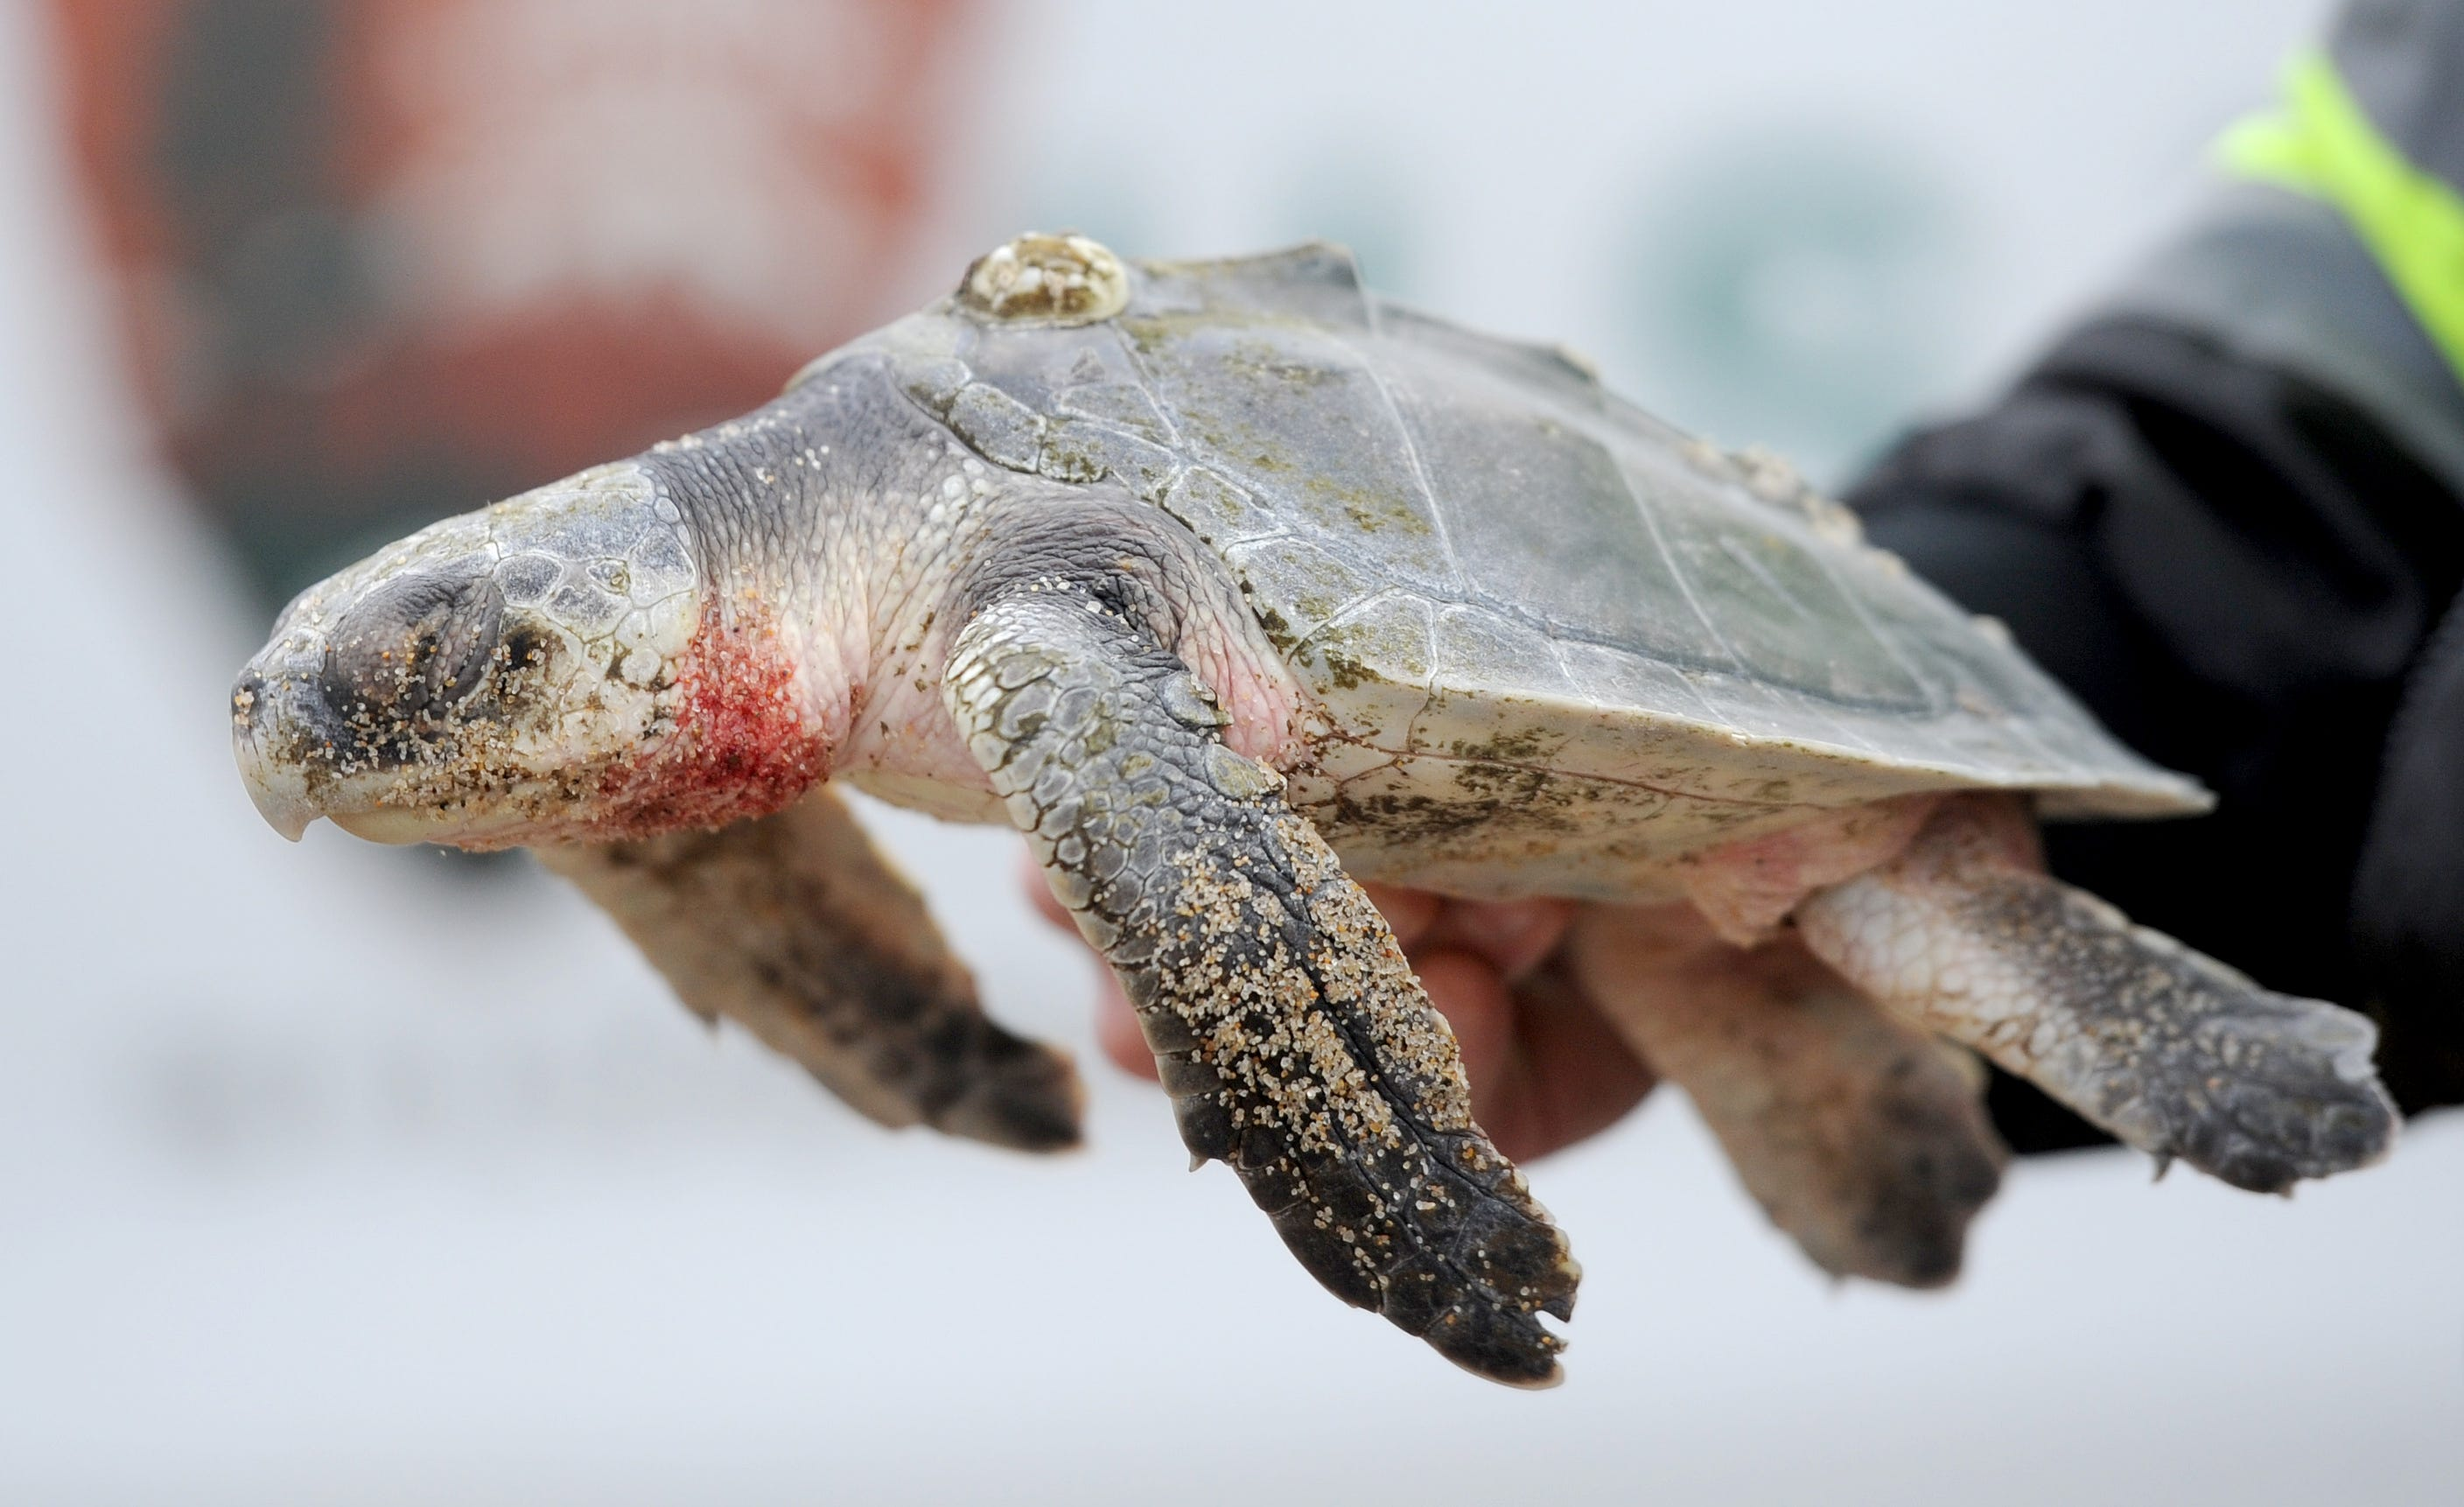 At least 900 hypothermic endangered sea turtles rescued off Cape Cod beaches in 2020